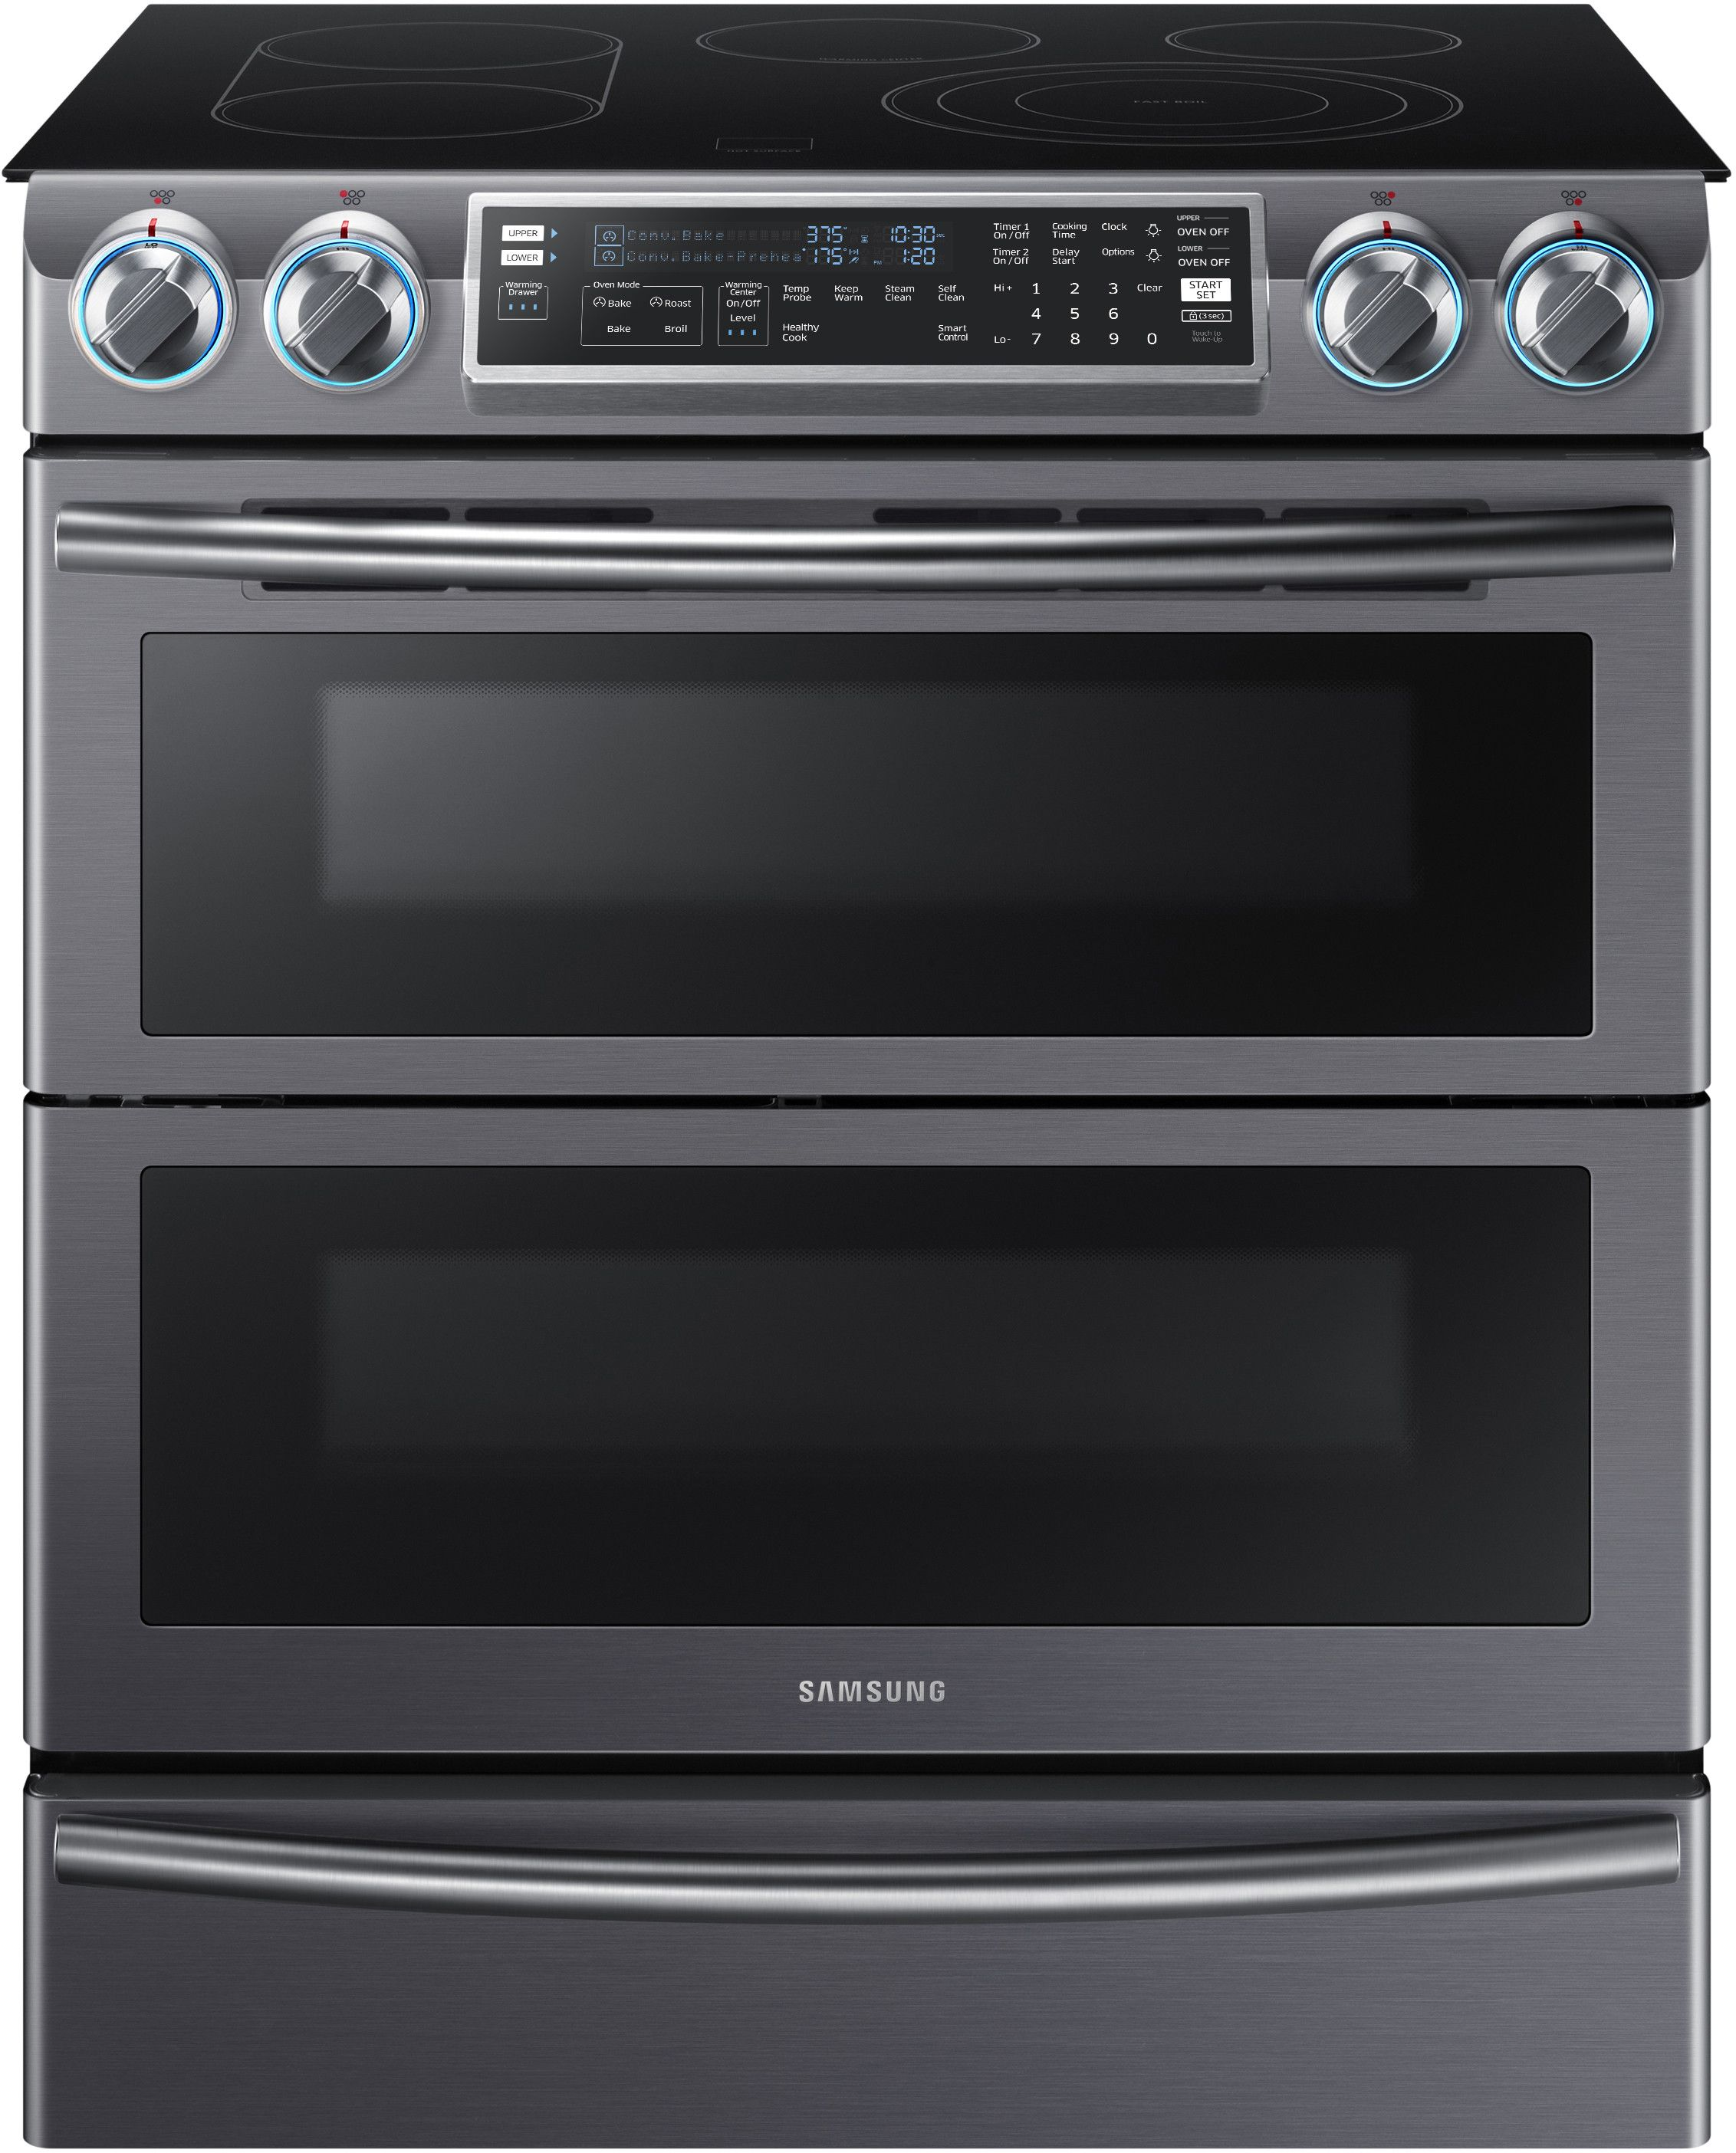 Samsung NE58K9850WG 30 Inch Flex Duo Slide In Electric Range with